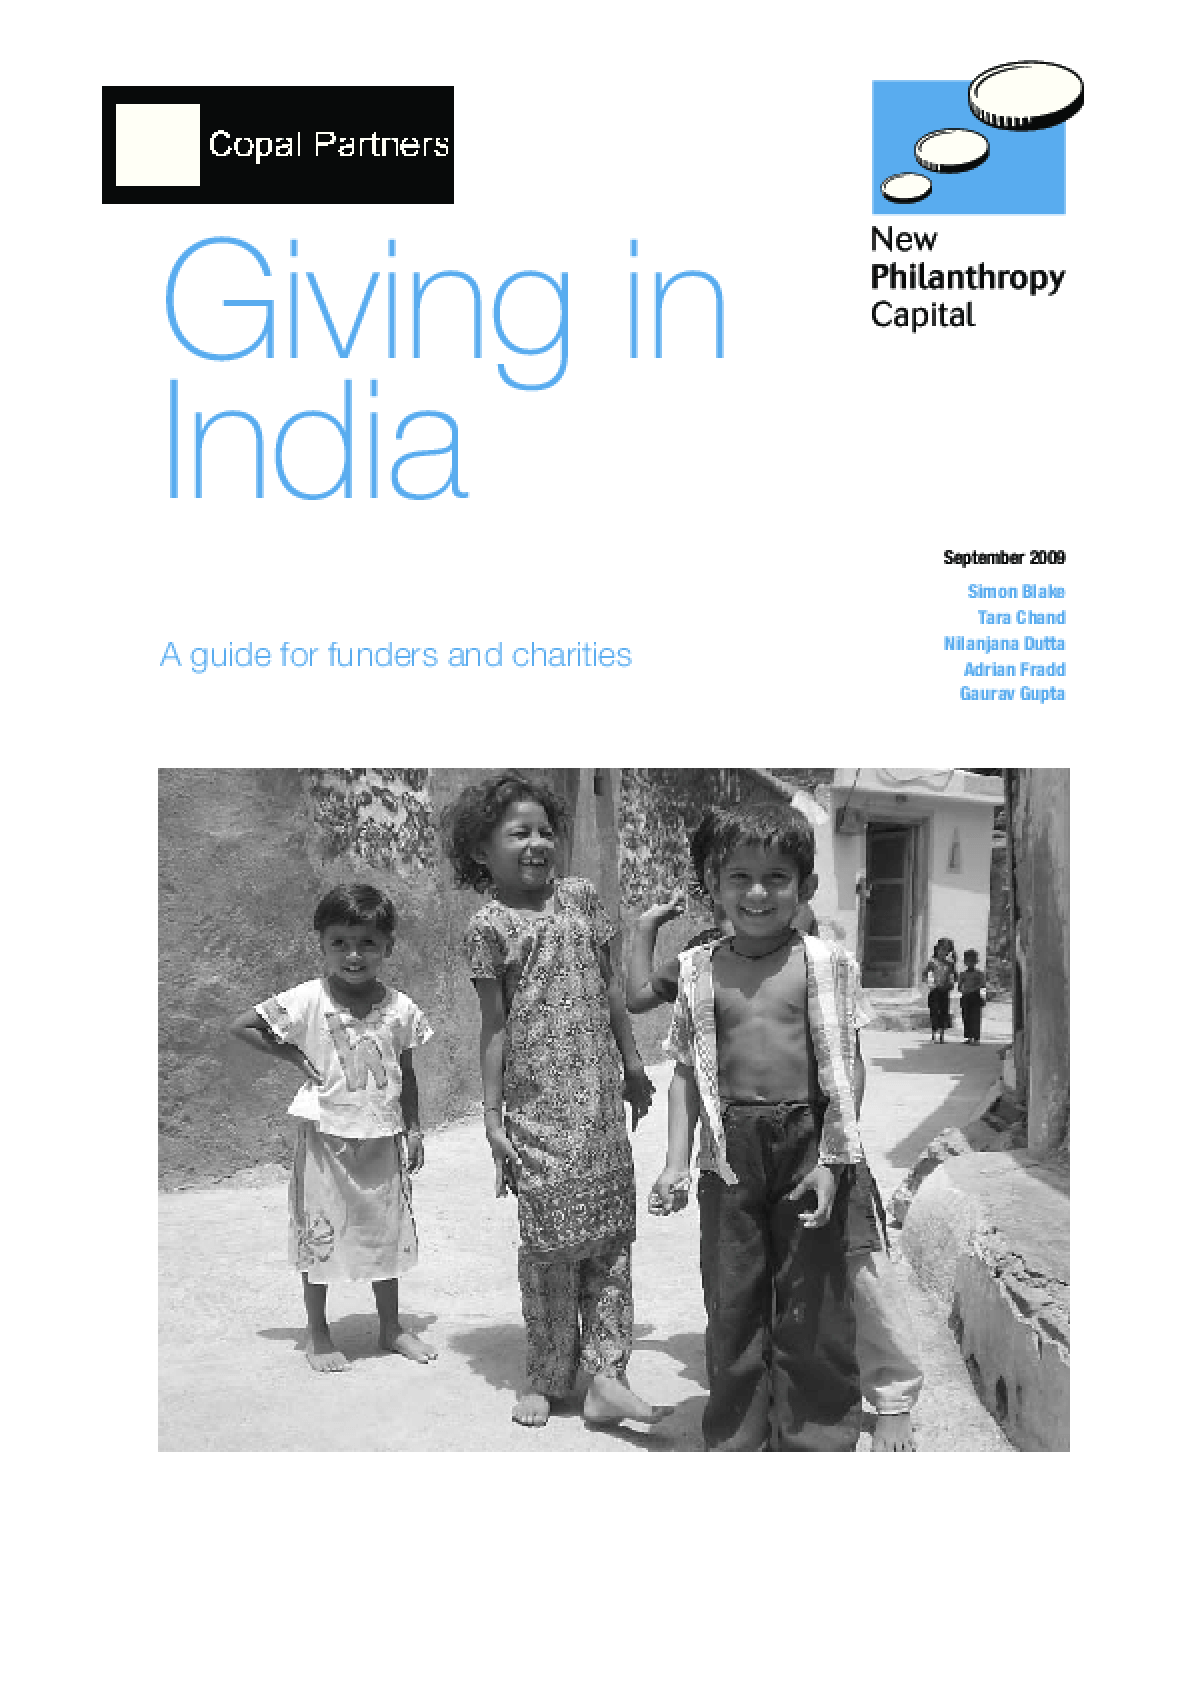 Giving in India: A Guide for Funders and Charities